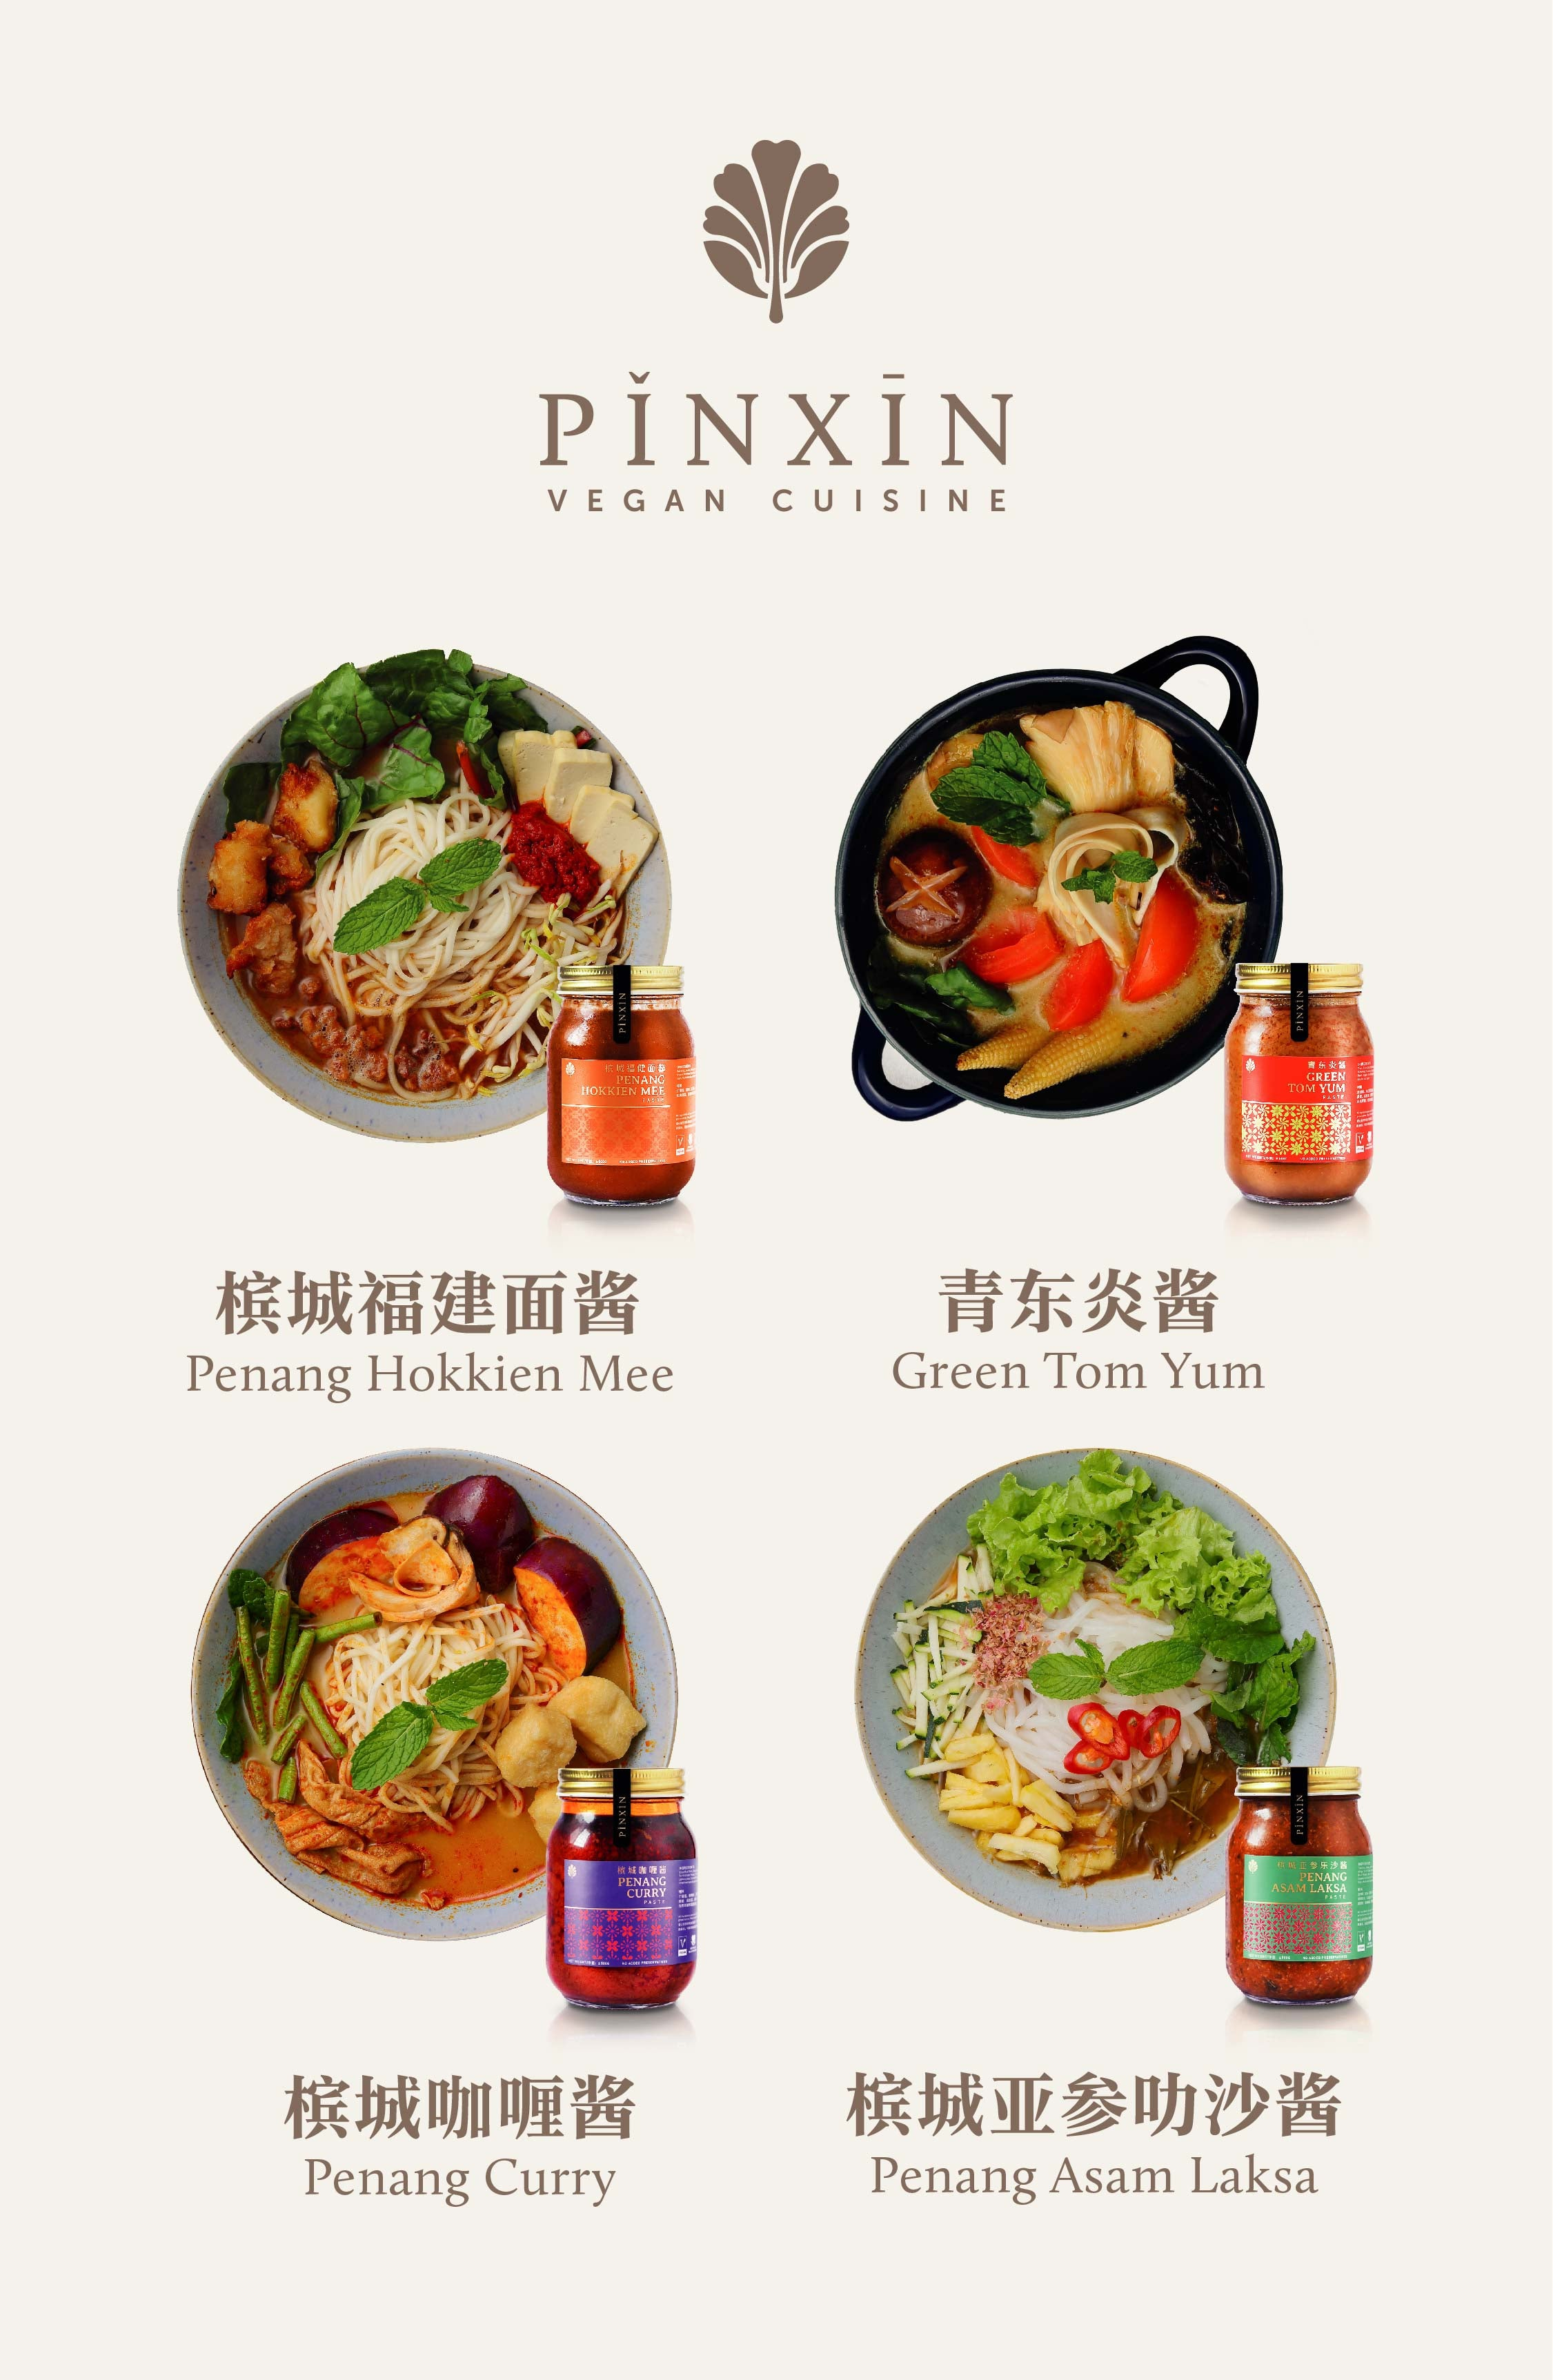 pinxin vegetarian healthy street food restaurant vegan cafe Georgetown Penang Malaysia